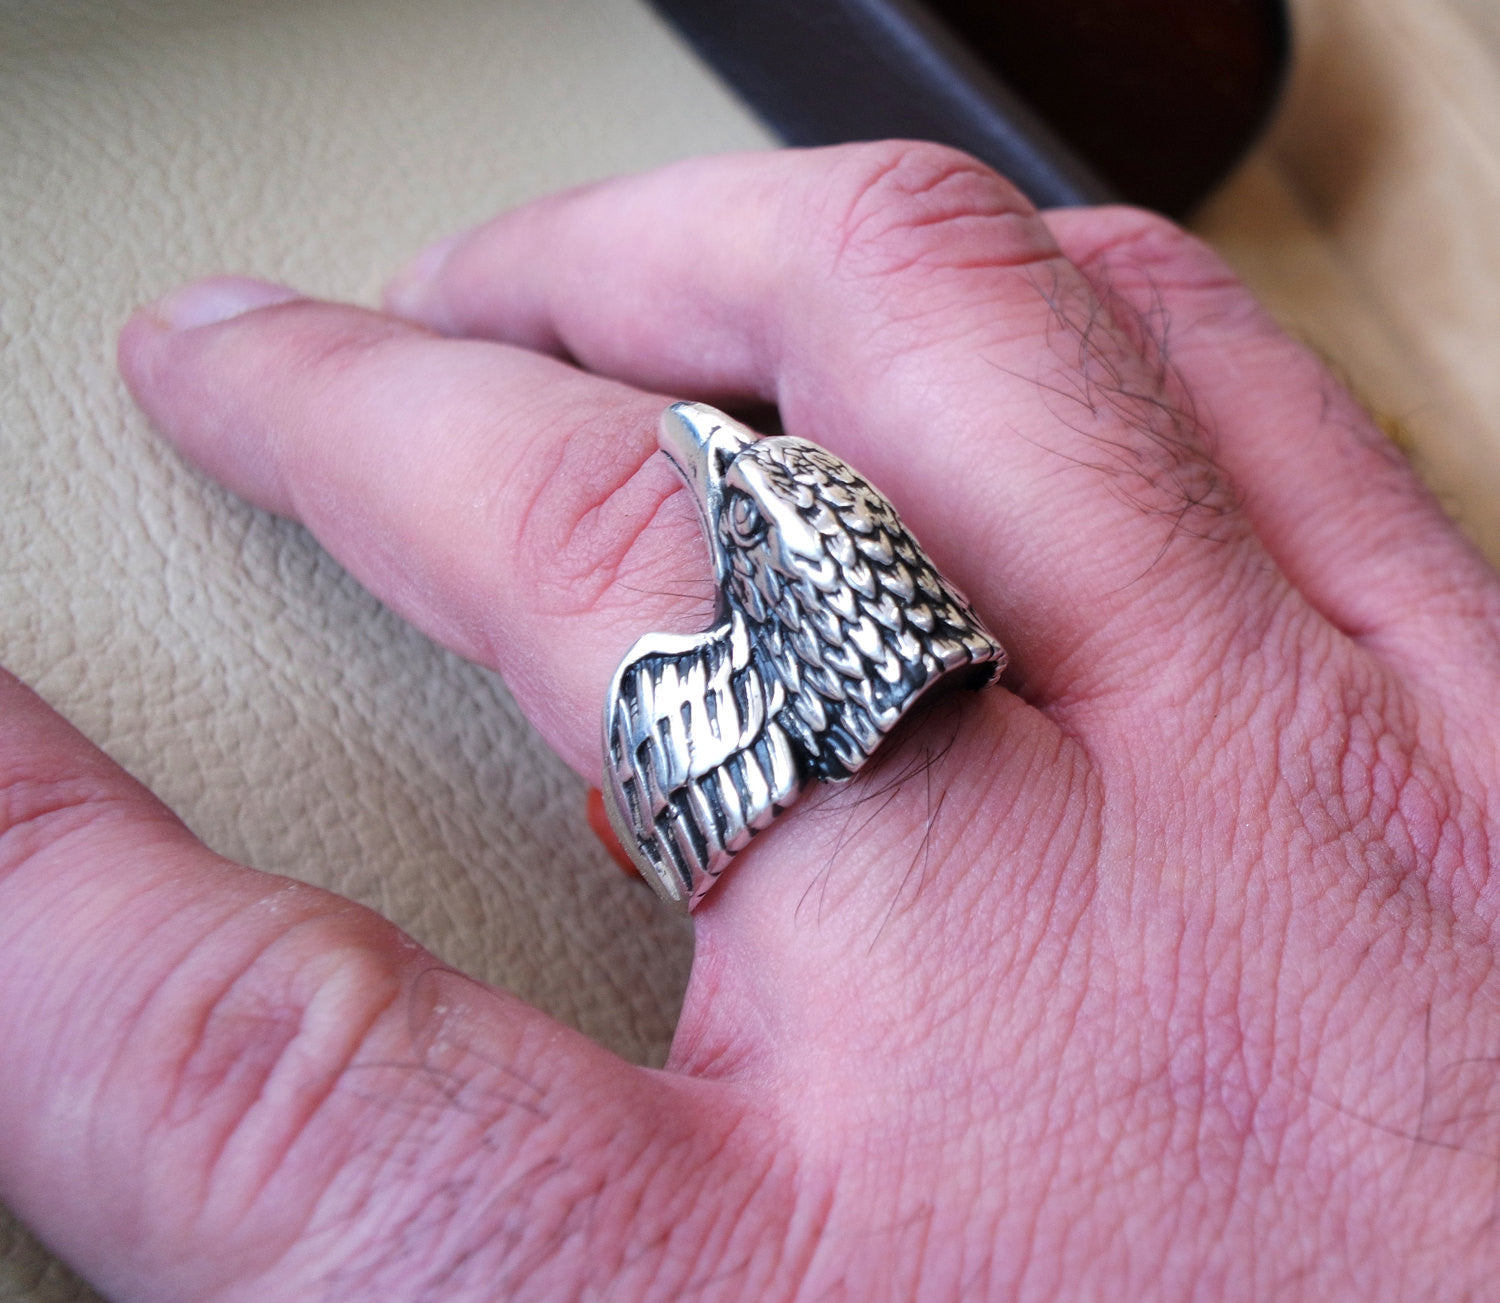 eagle falcon ring heavy sterling silver 925 man biker ring all sizes handmade animal head jewelry fast shipping detailed craftsmanship